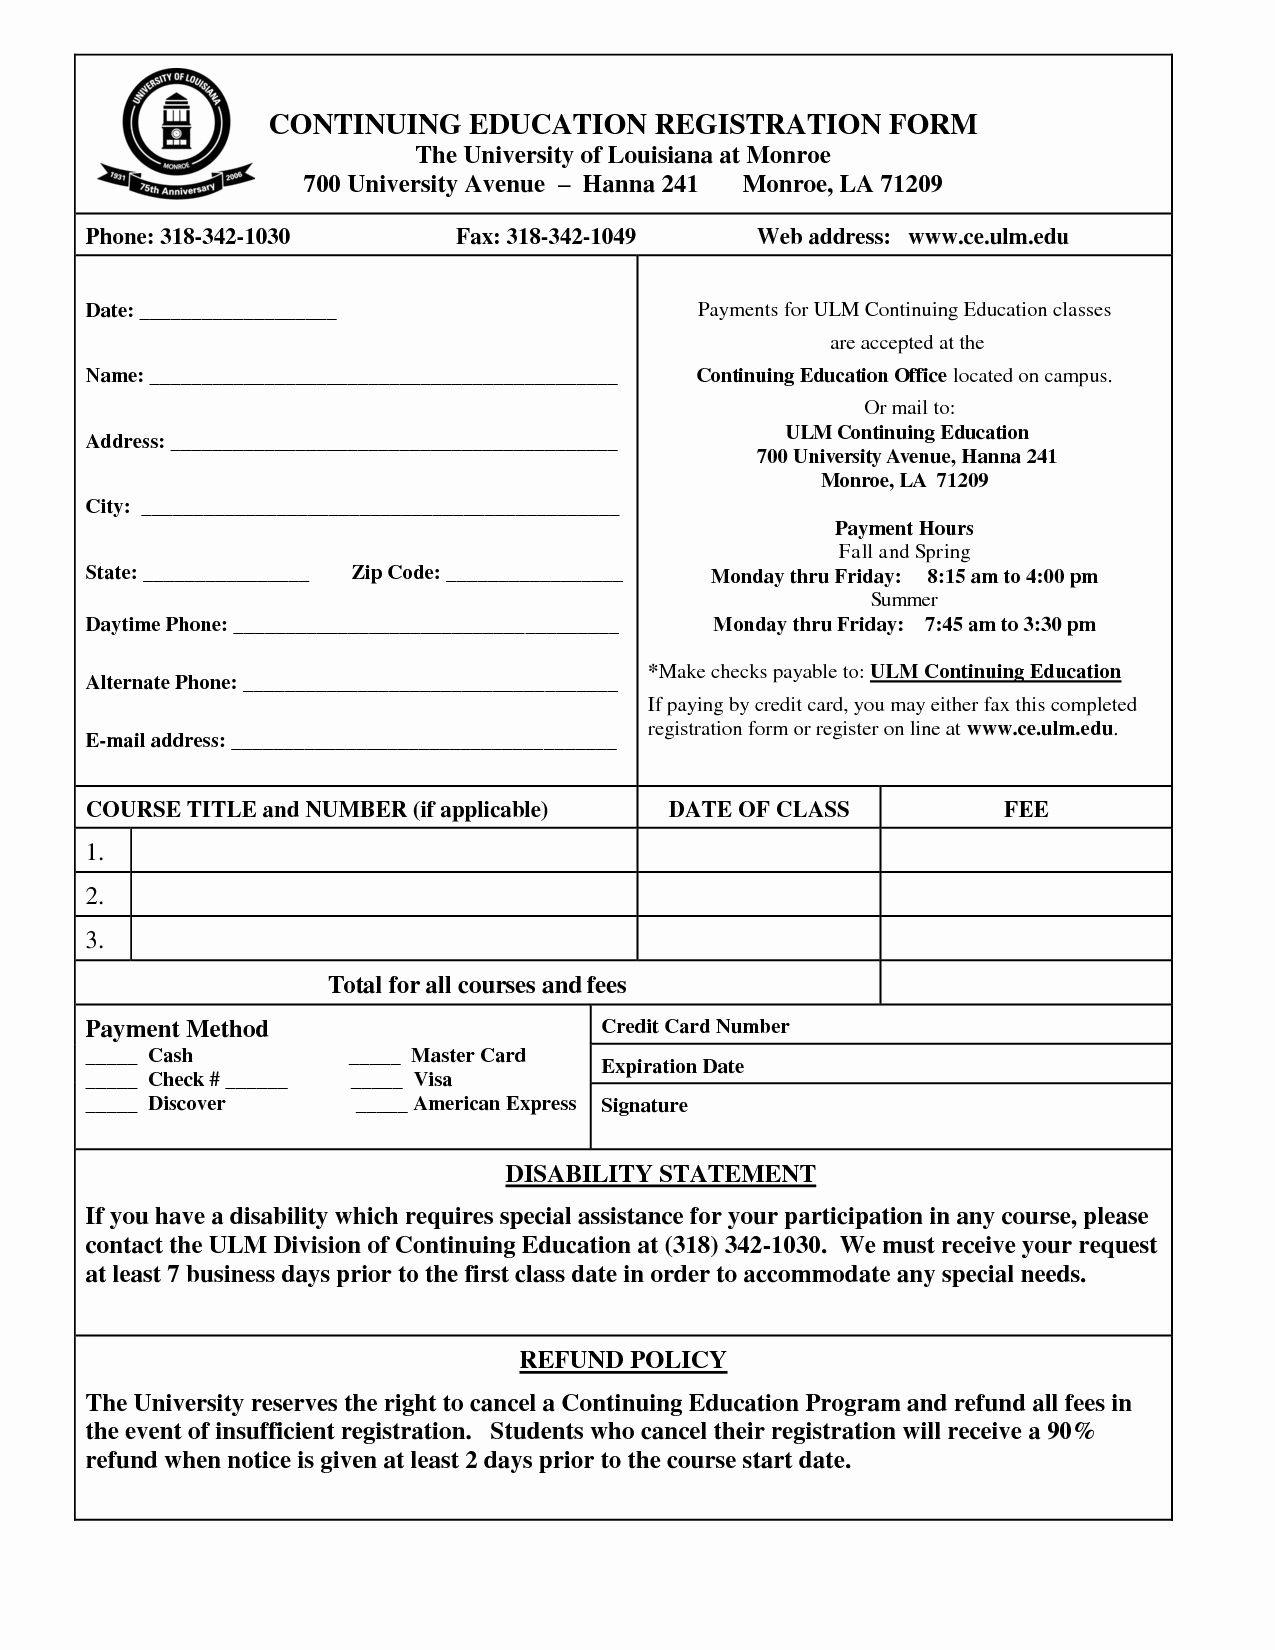 Template for Registration form Unique Student Application form Template Portablegasgrillweber